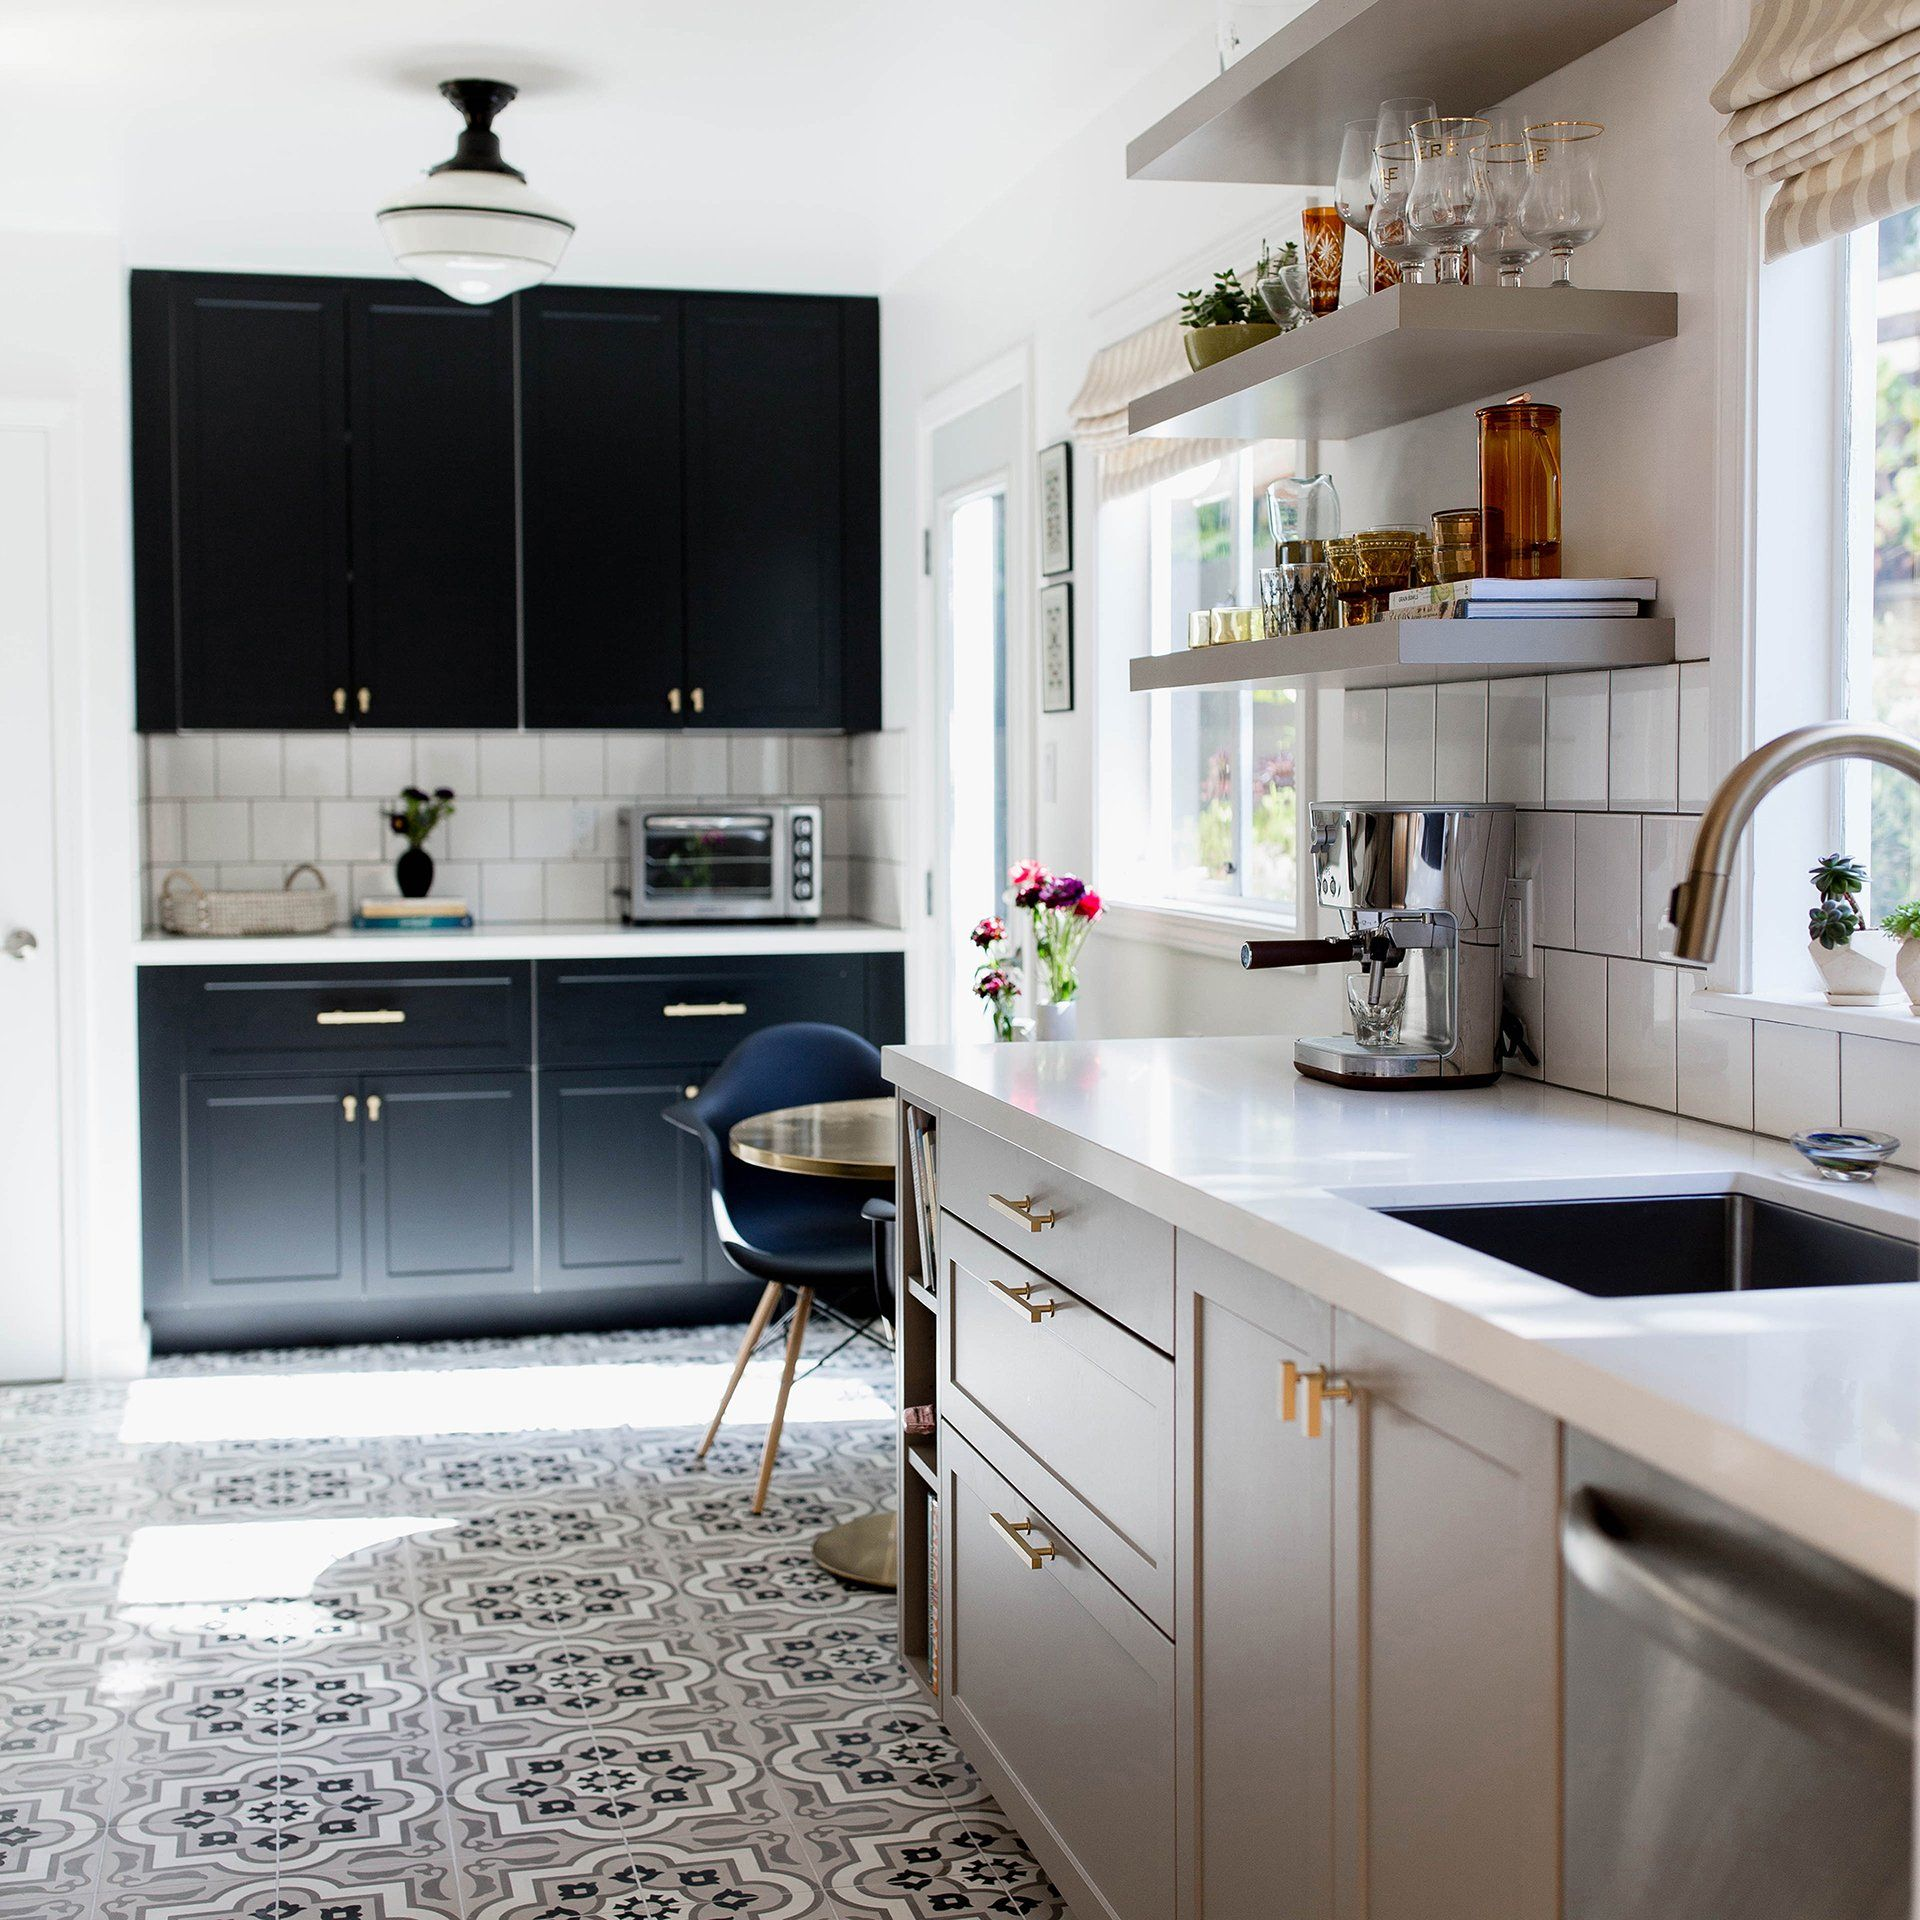 A Smart Two Tone Kitchen In Oakland Hills Waterfall Countertop Kitchen Cabinet Trends Black Kitchen Cabinets